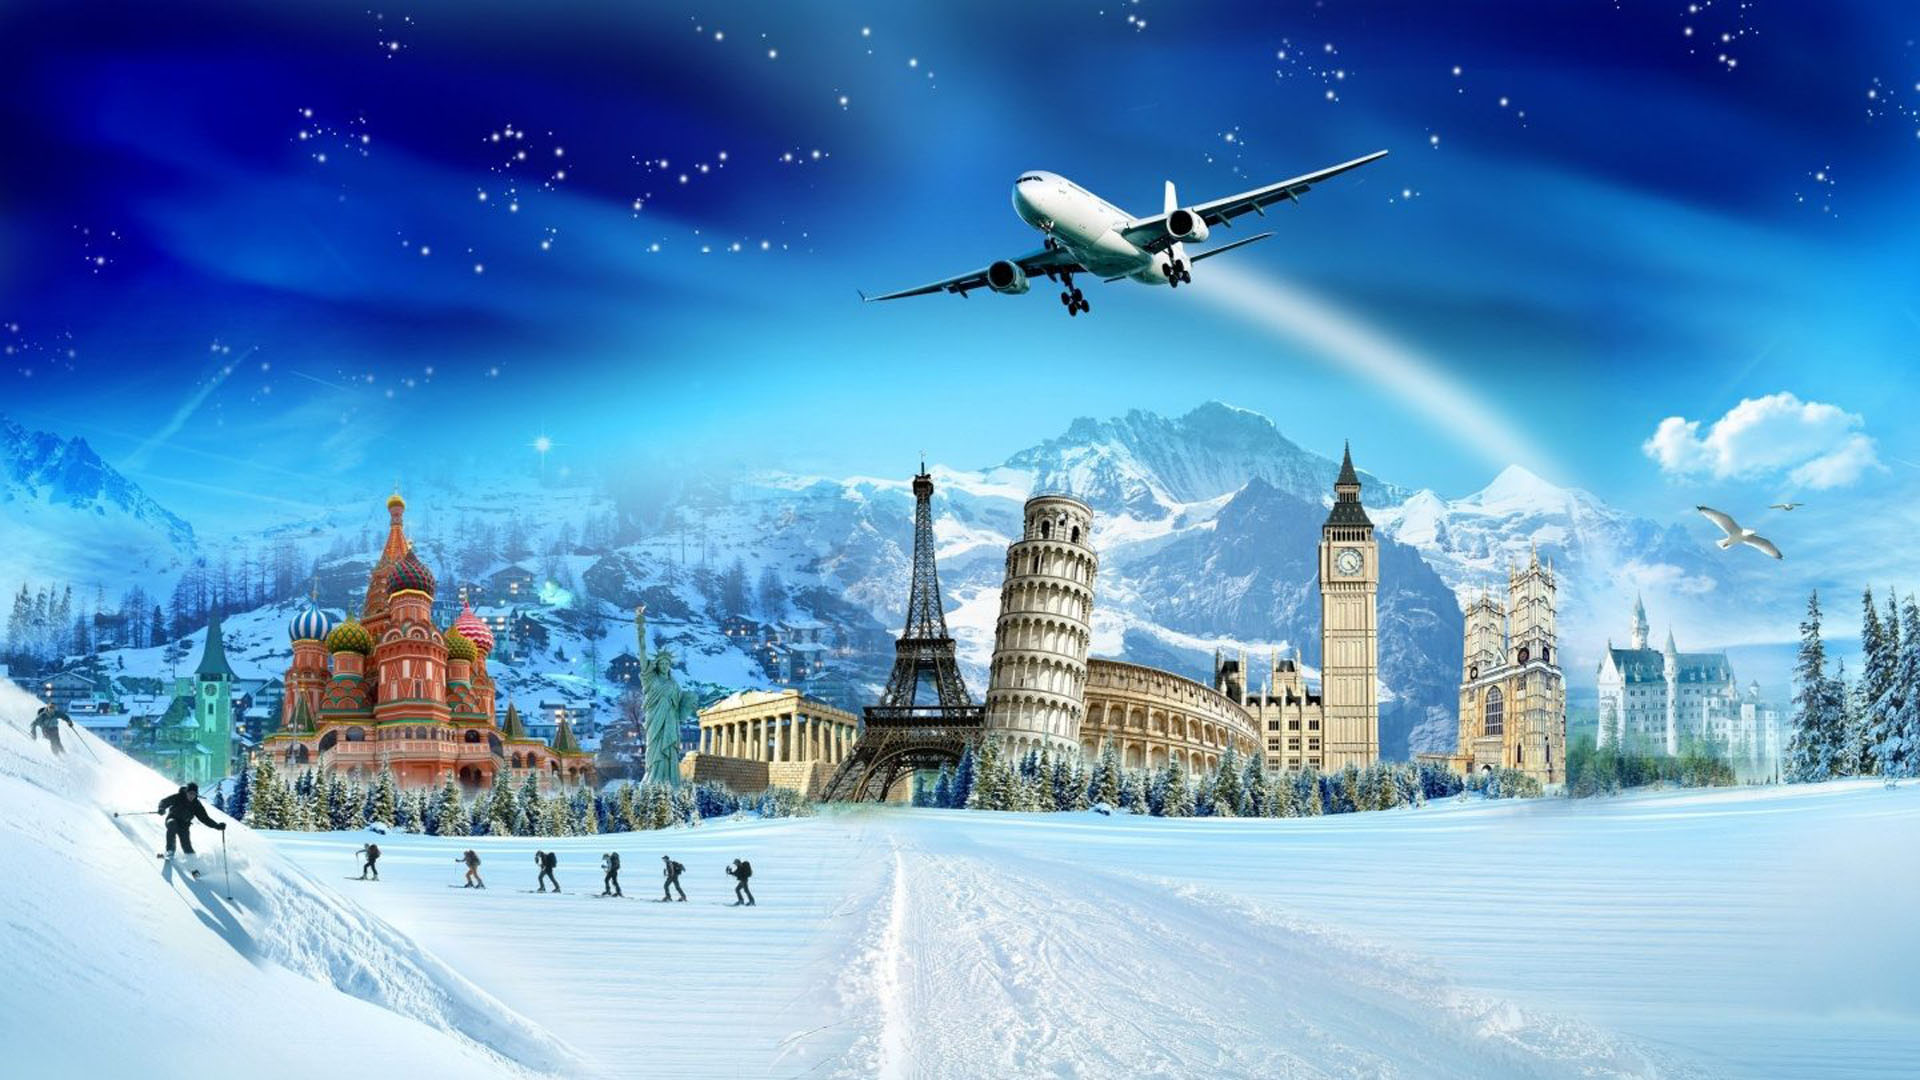 Travel Agency Wallpaper